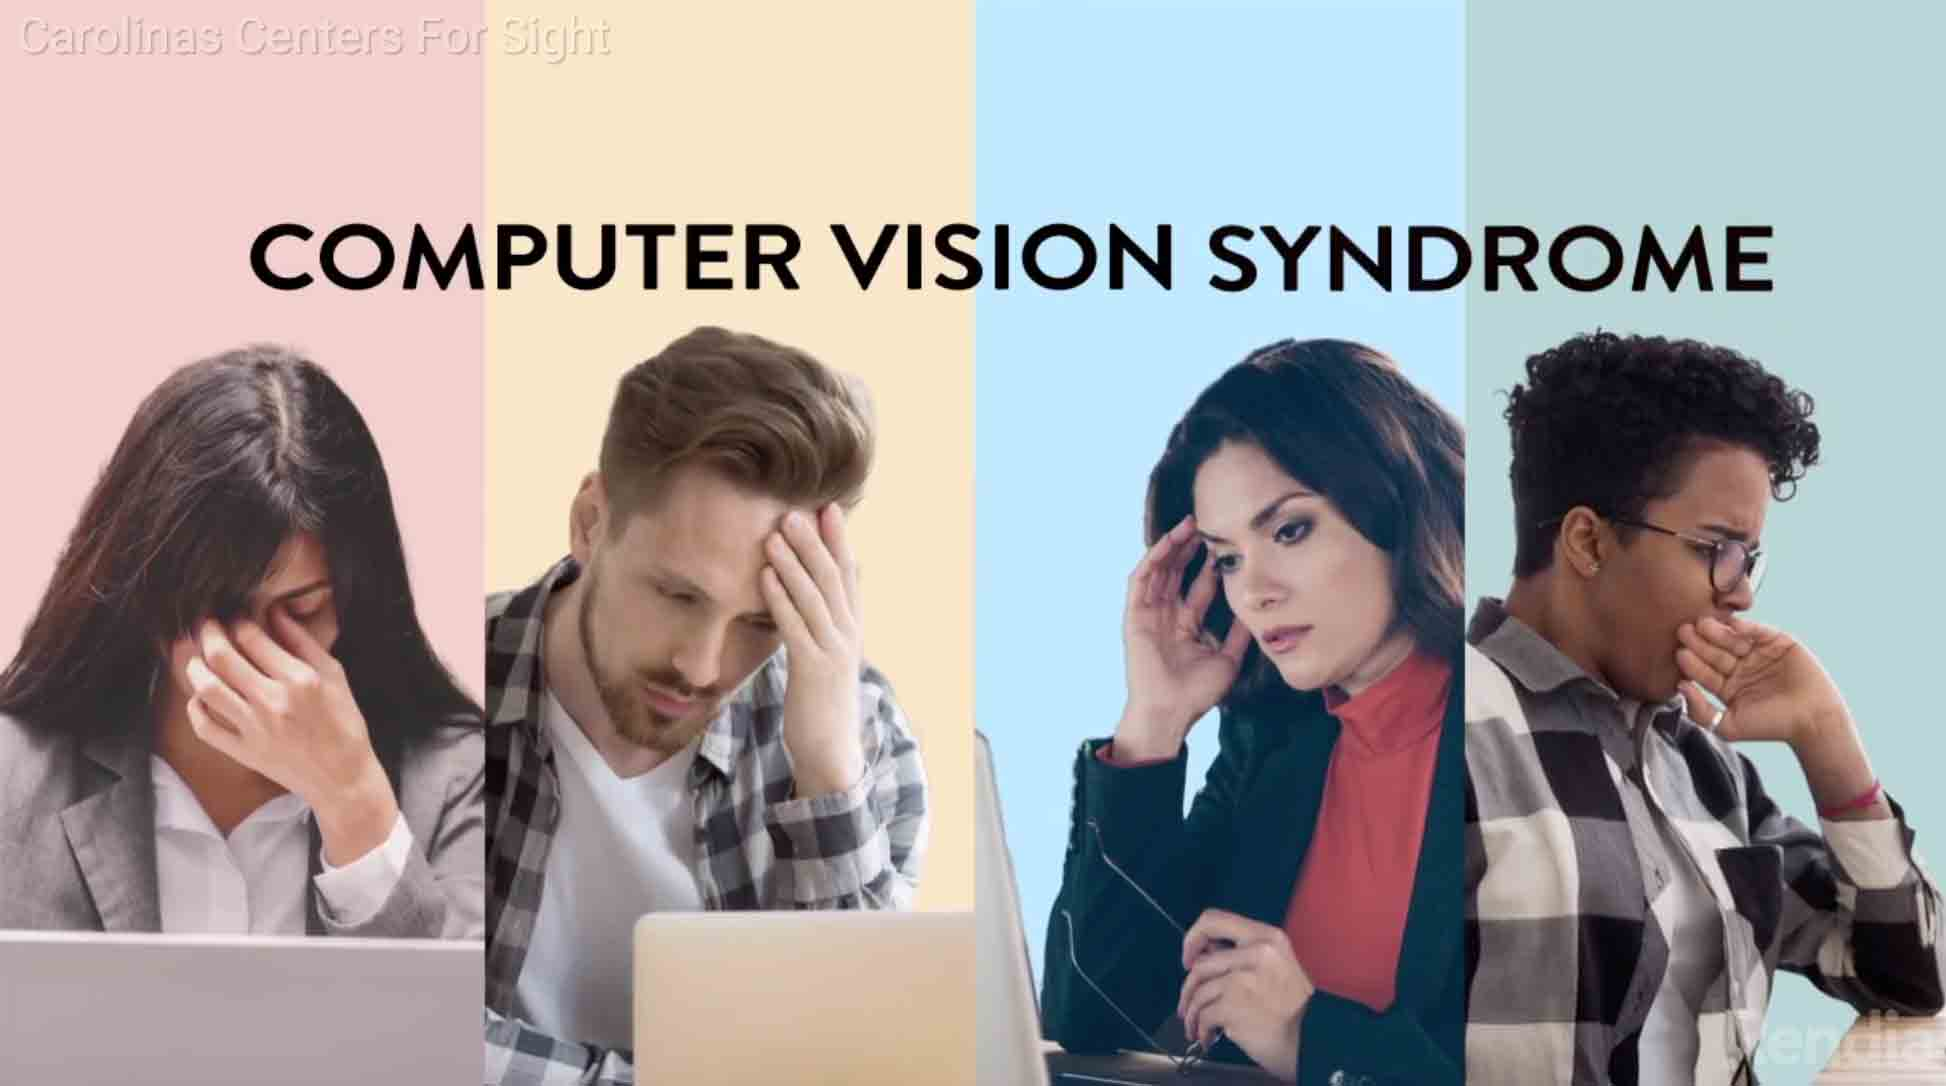 All You Need To Know About Computer Eye Strain (Video)